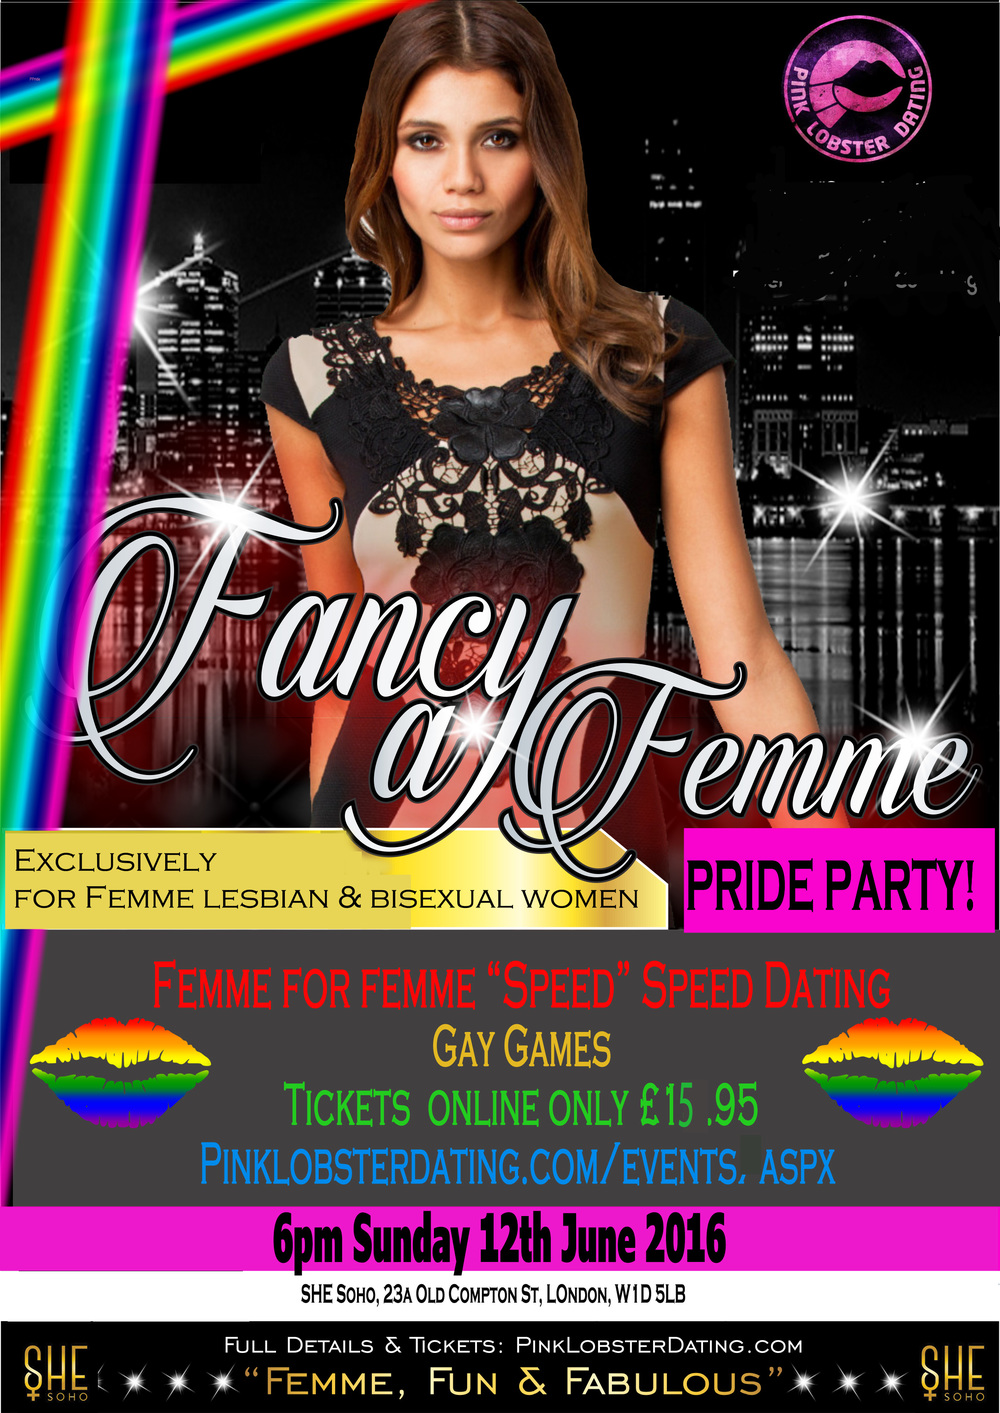 Femme Lesbian & Bi Pride Party June 12th 2016